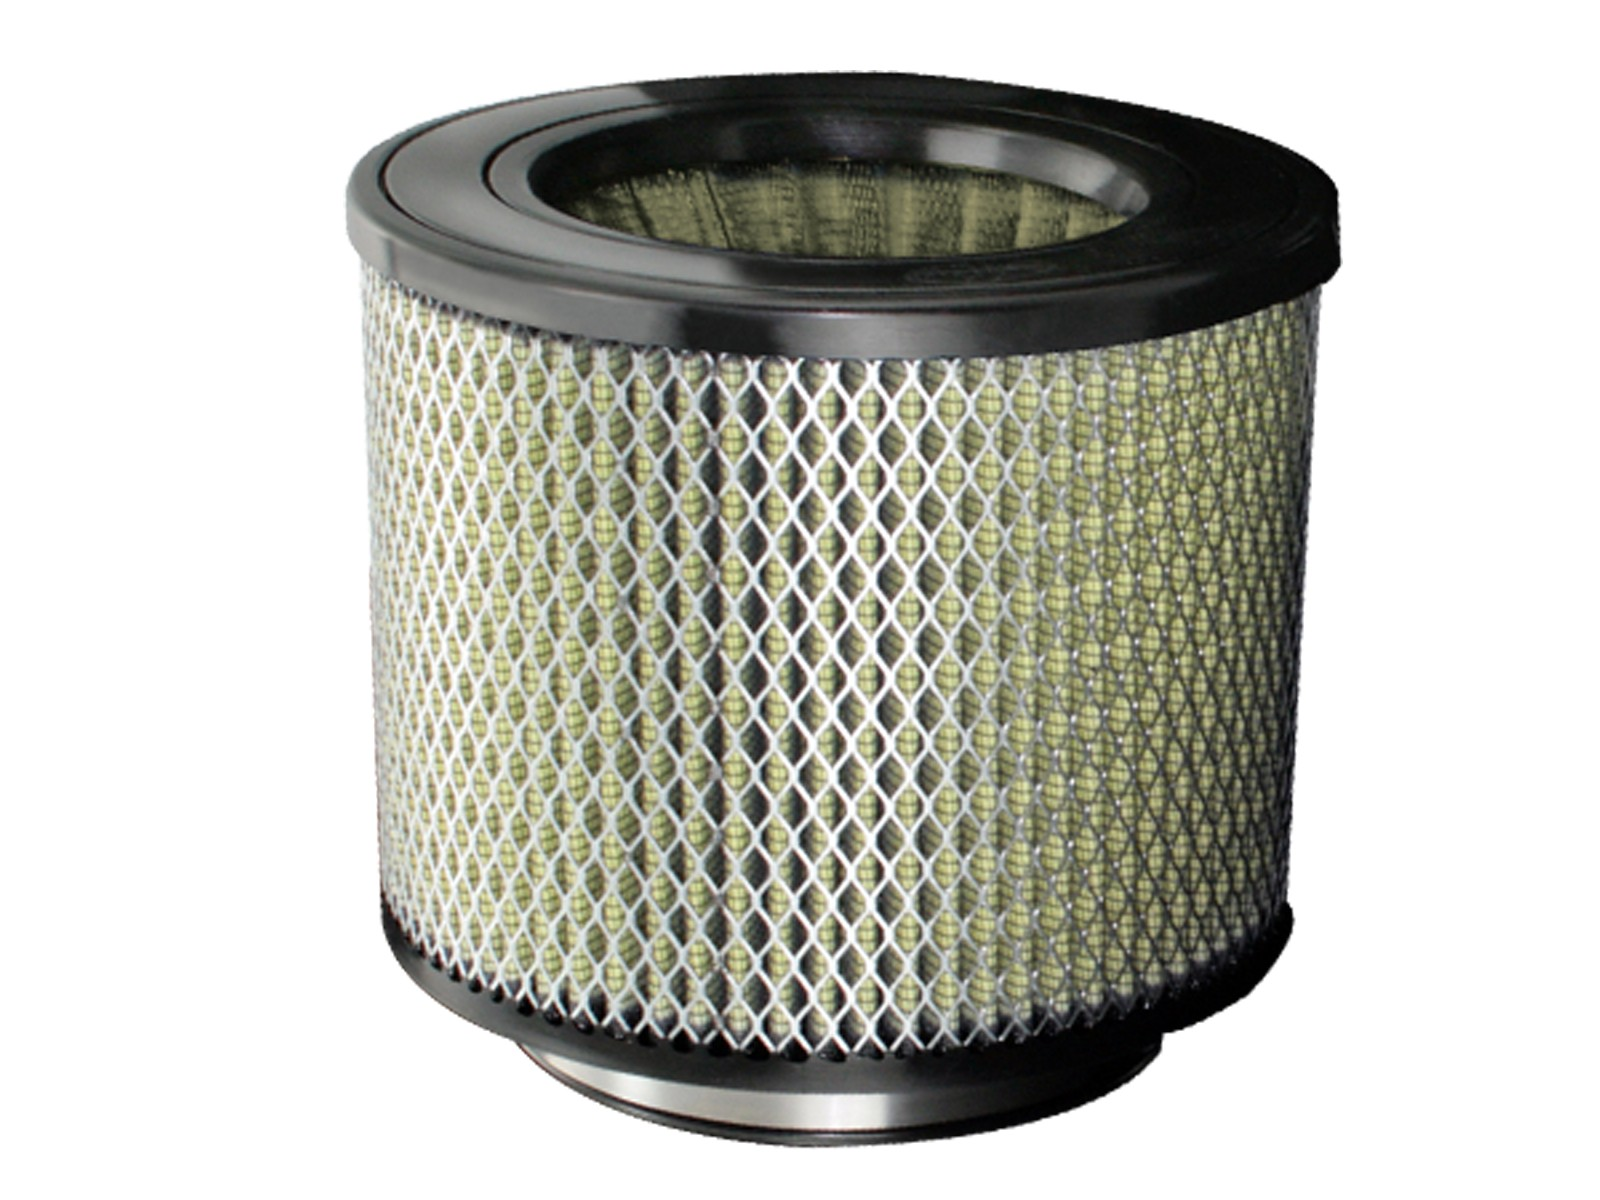 aFe POWER 72-91046 Magnum FLOW Pro GUARD7 Air Filter